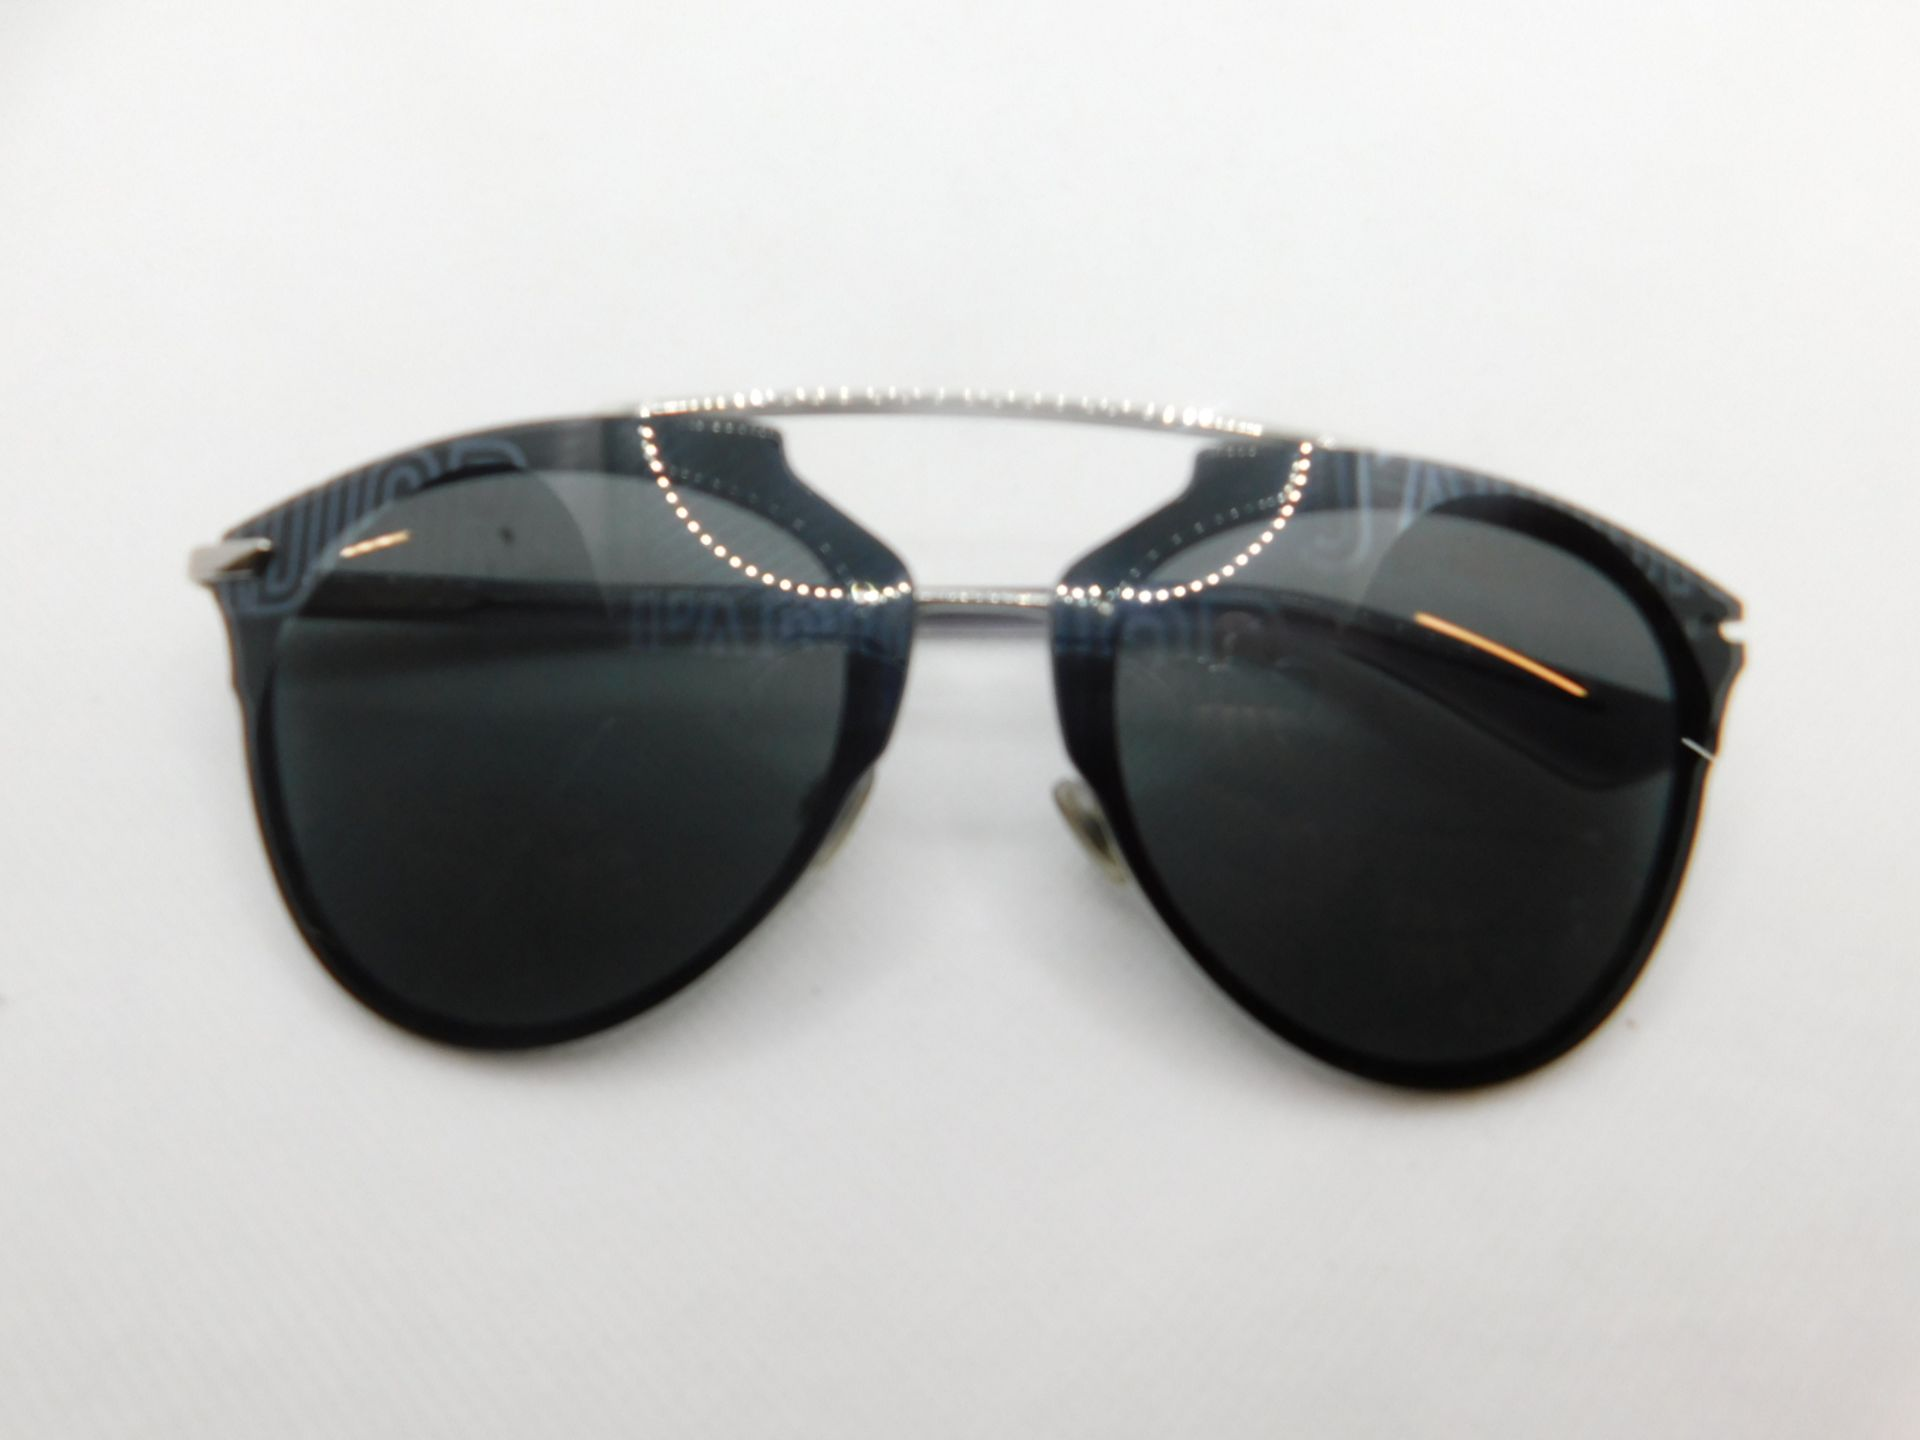 1 PAIR DIOR REFLECTED SUNGLASSES WITH CASE RRP £299 (HINGE SCREW DOESN'T STAY IN FRAME)